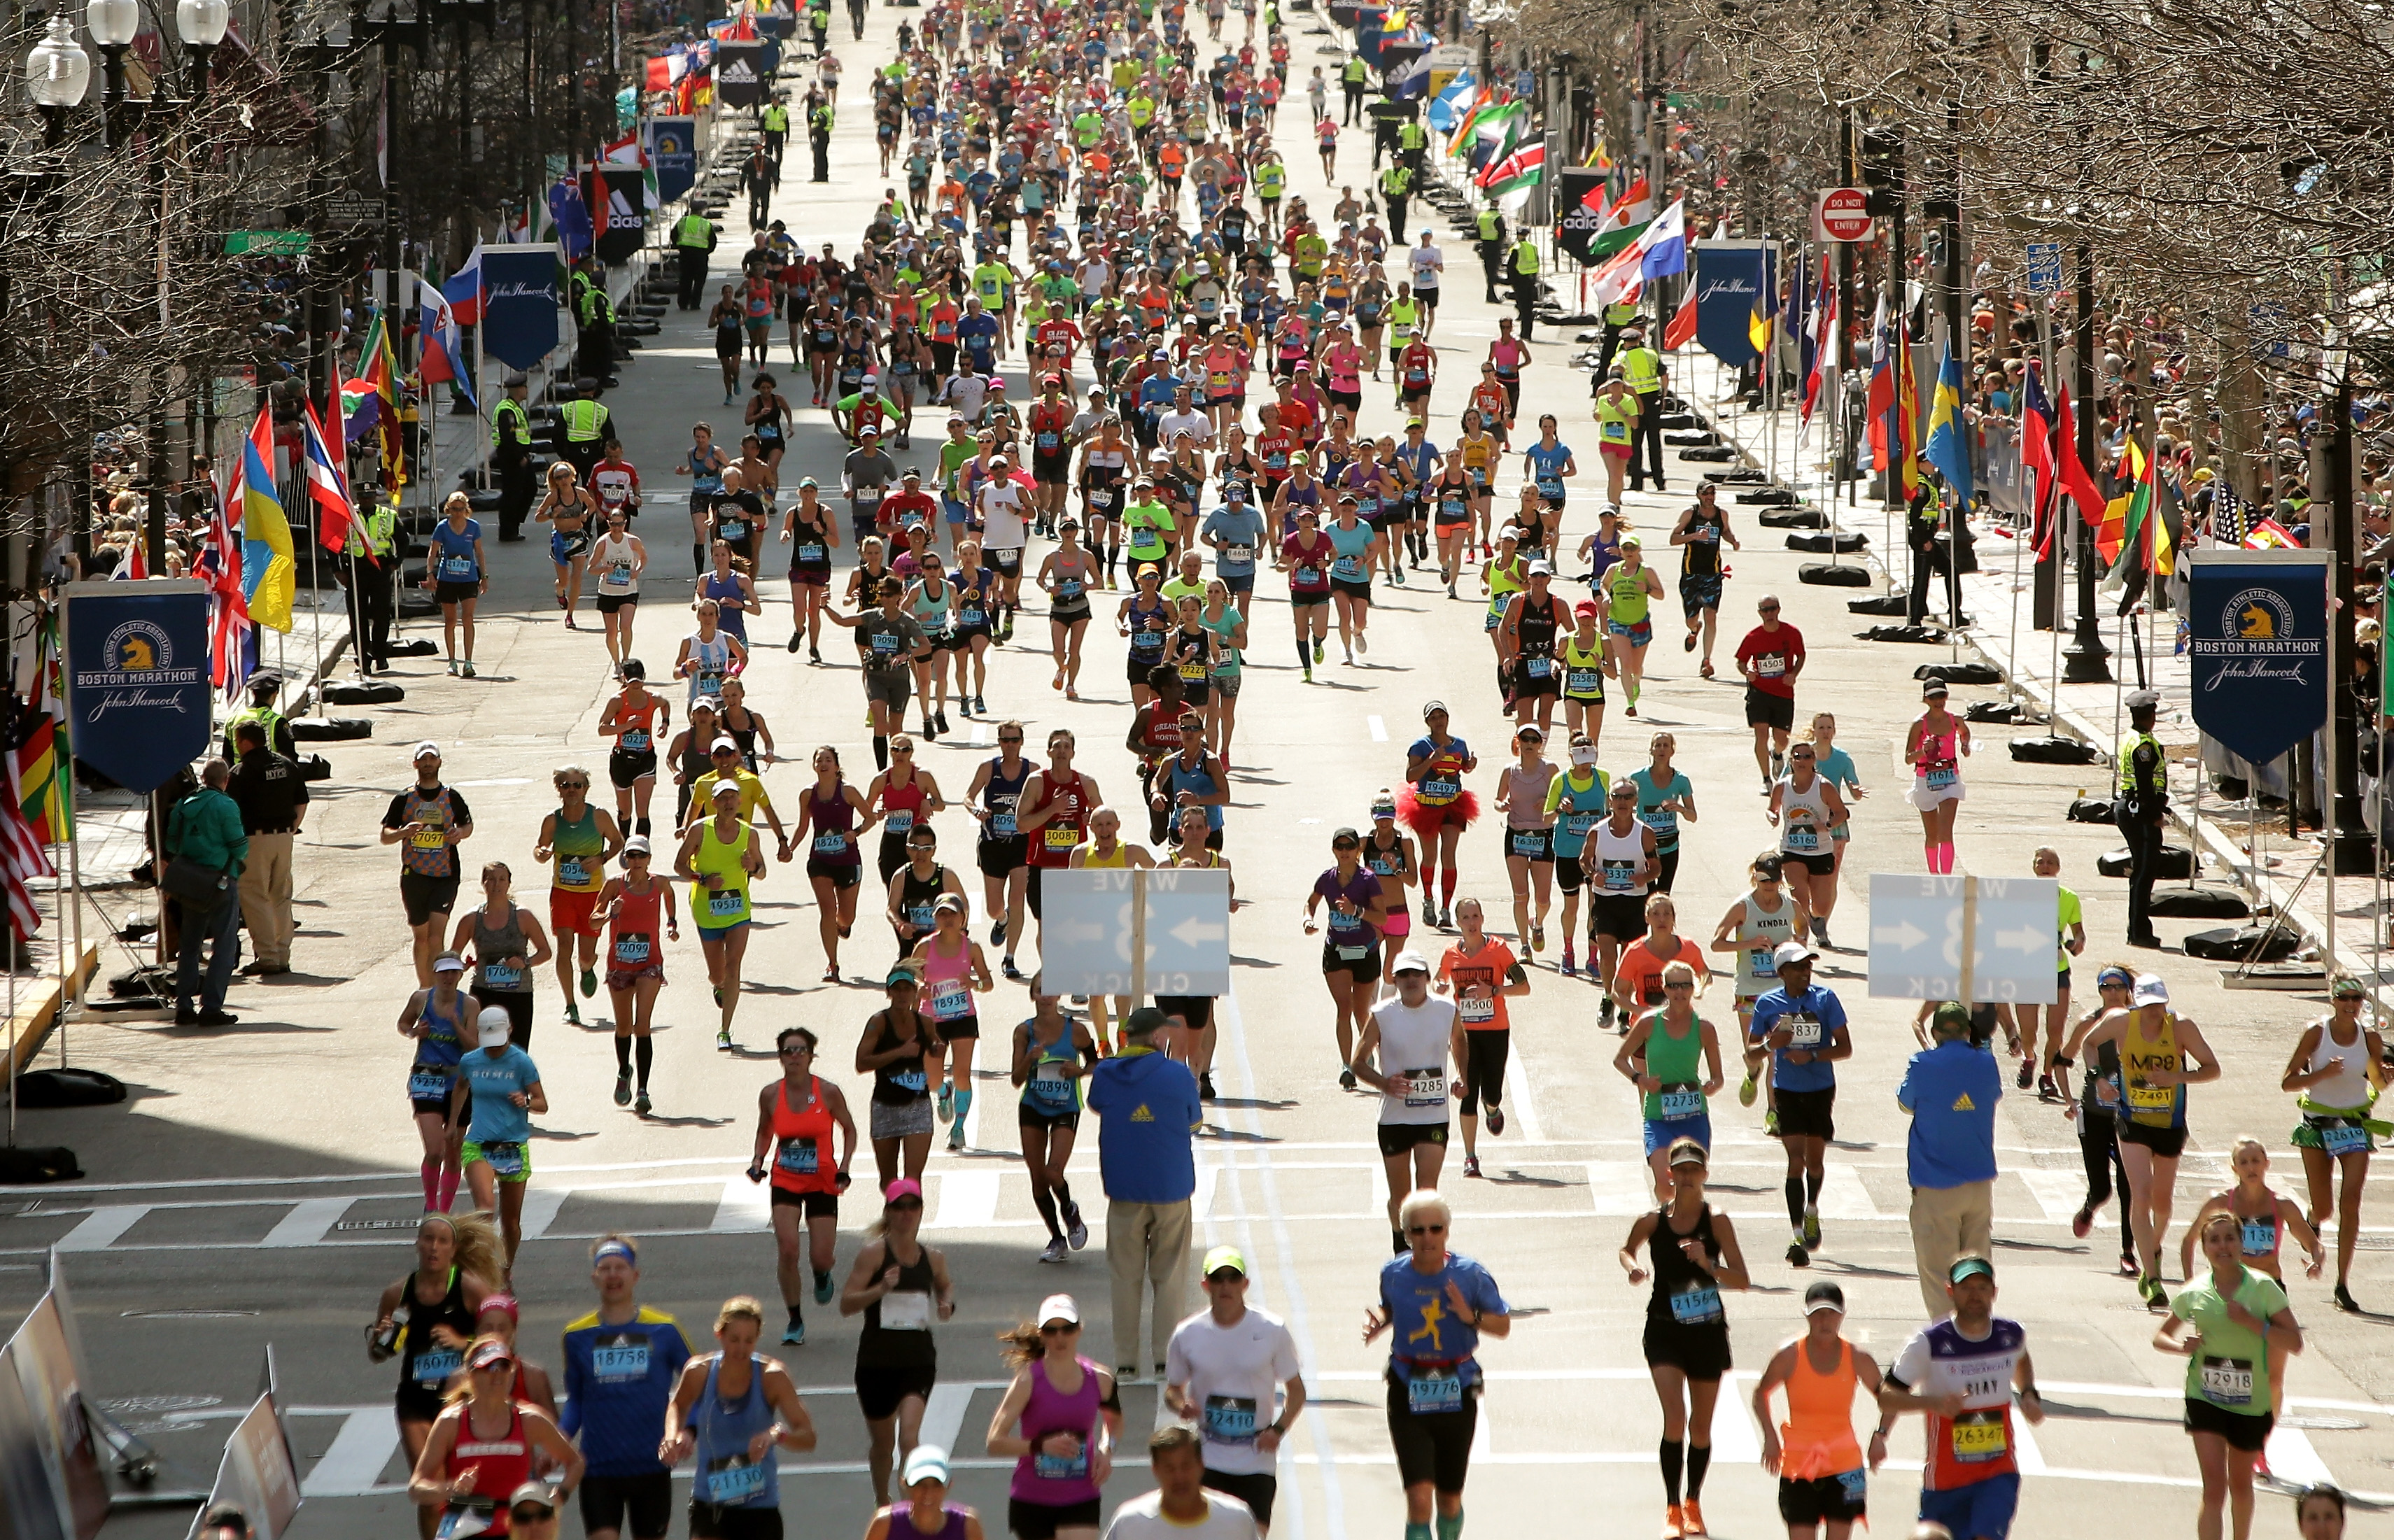 Runners near the finish line on Boylston Street during Monday's 120th Boston Marathon. (Getty Images)